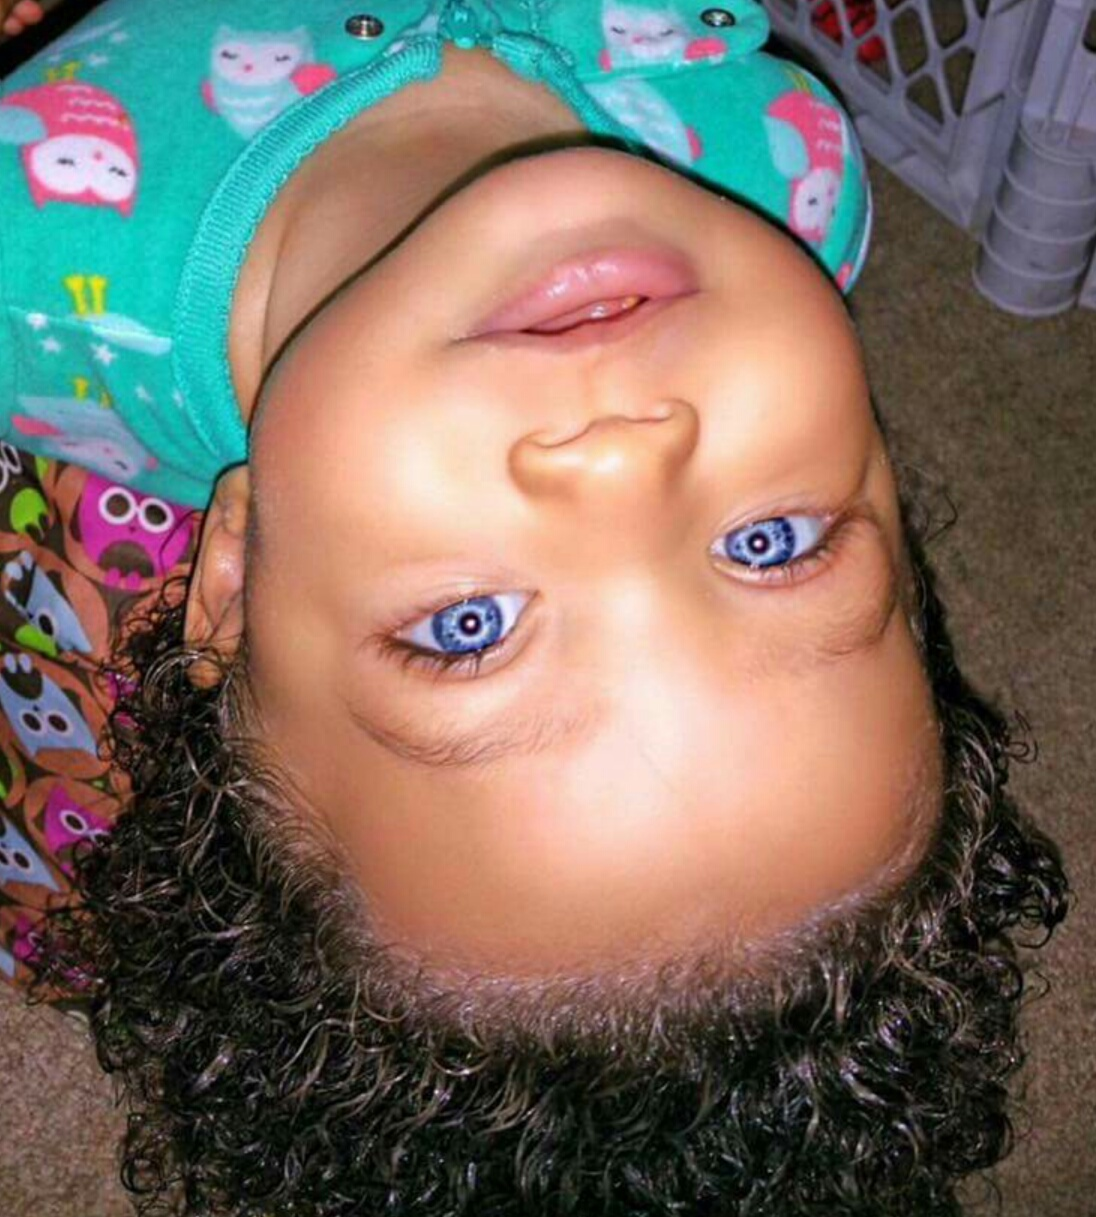 dress - Baby Mixed girl with green eyes pictures video